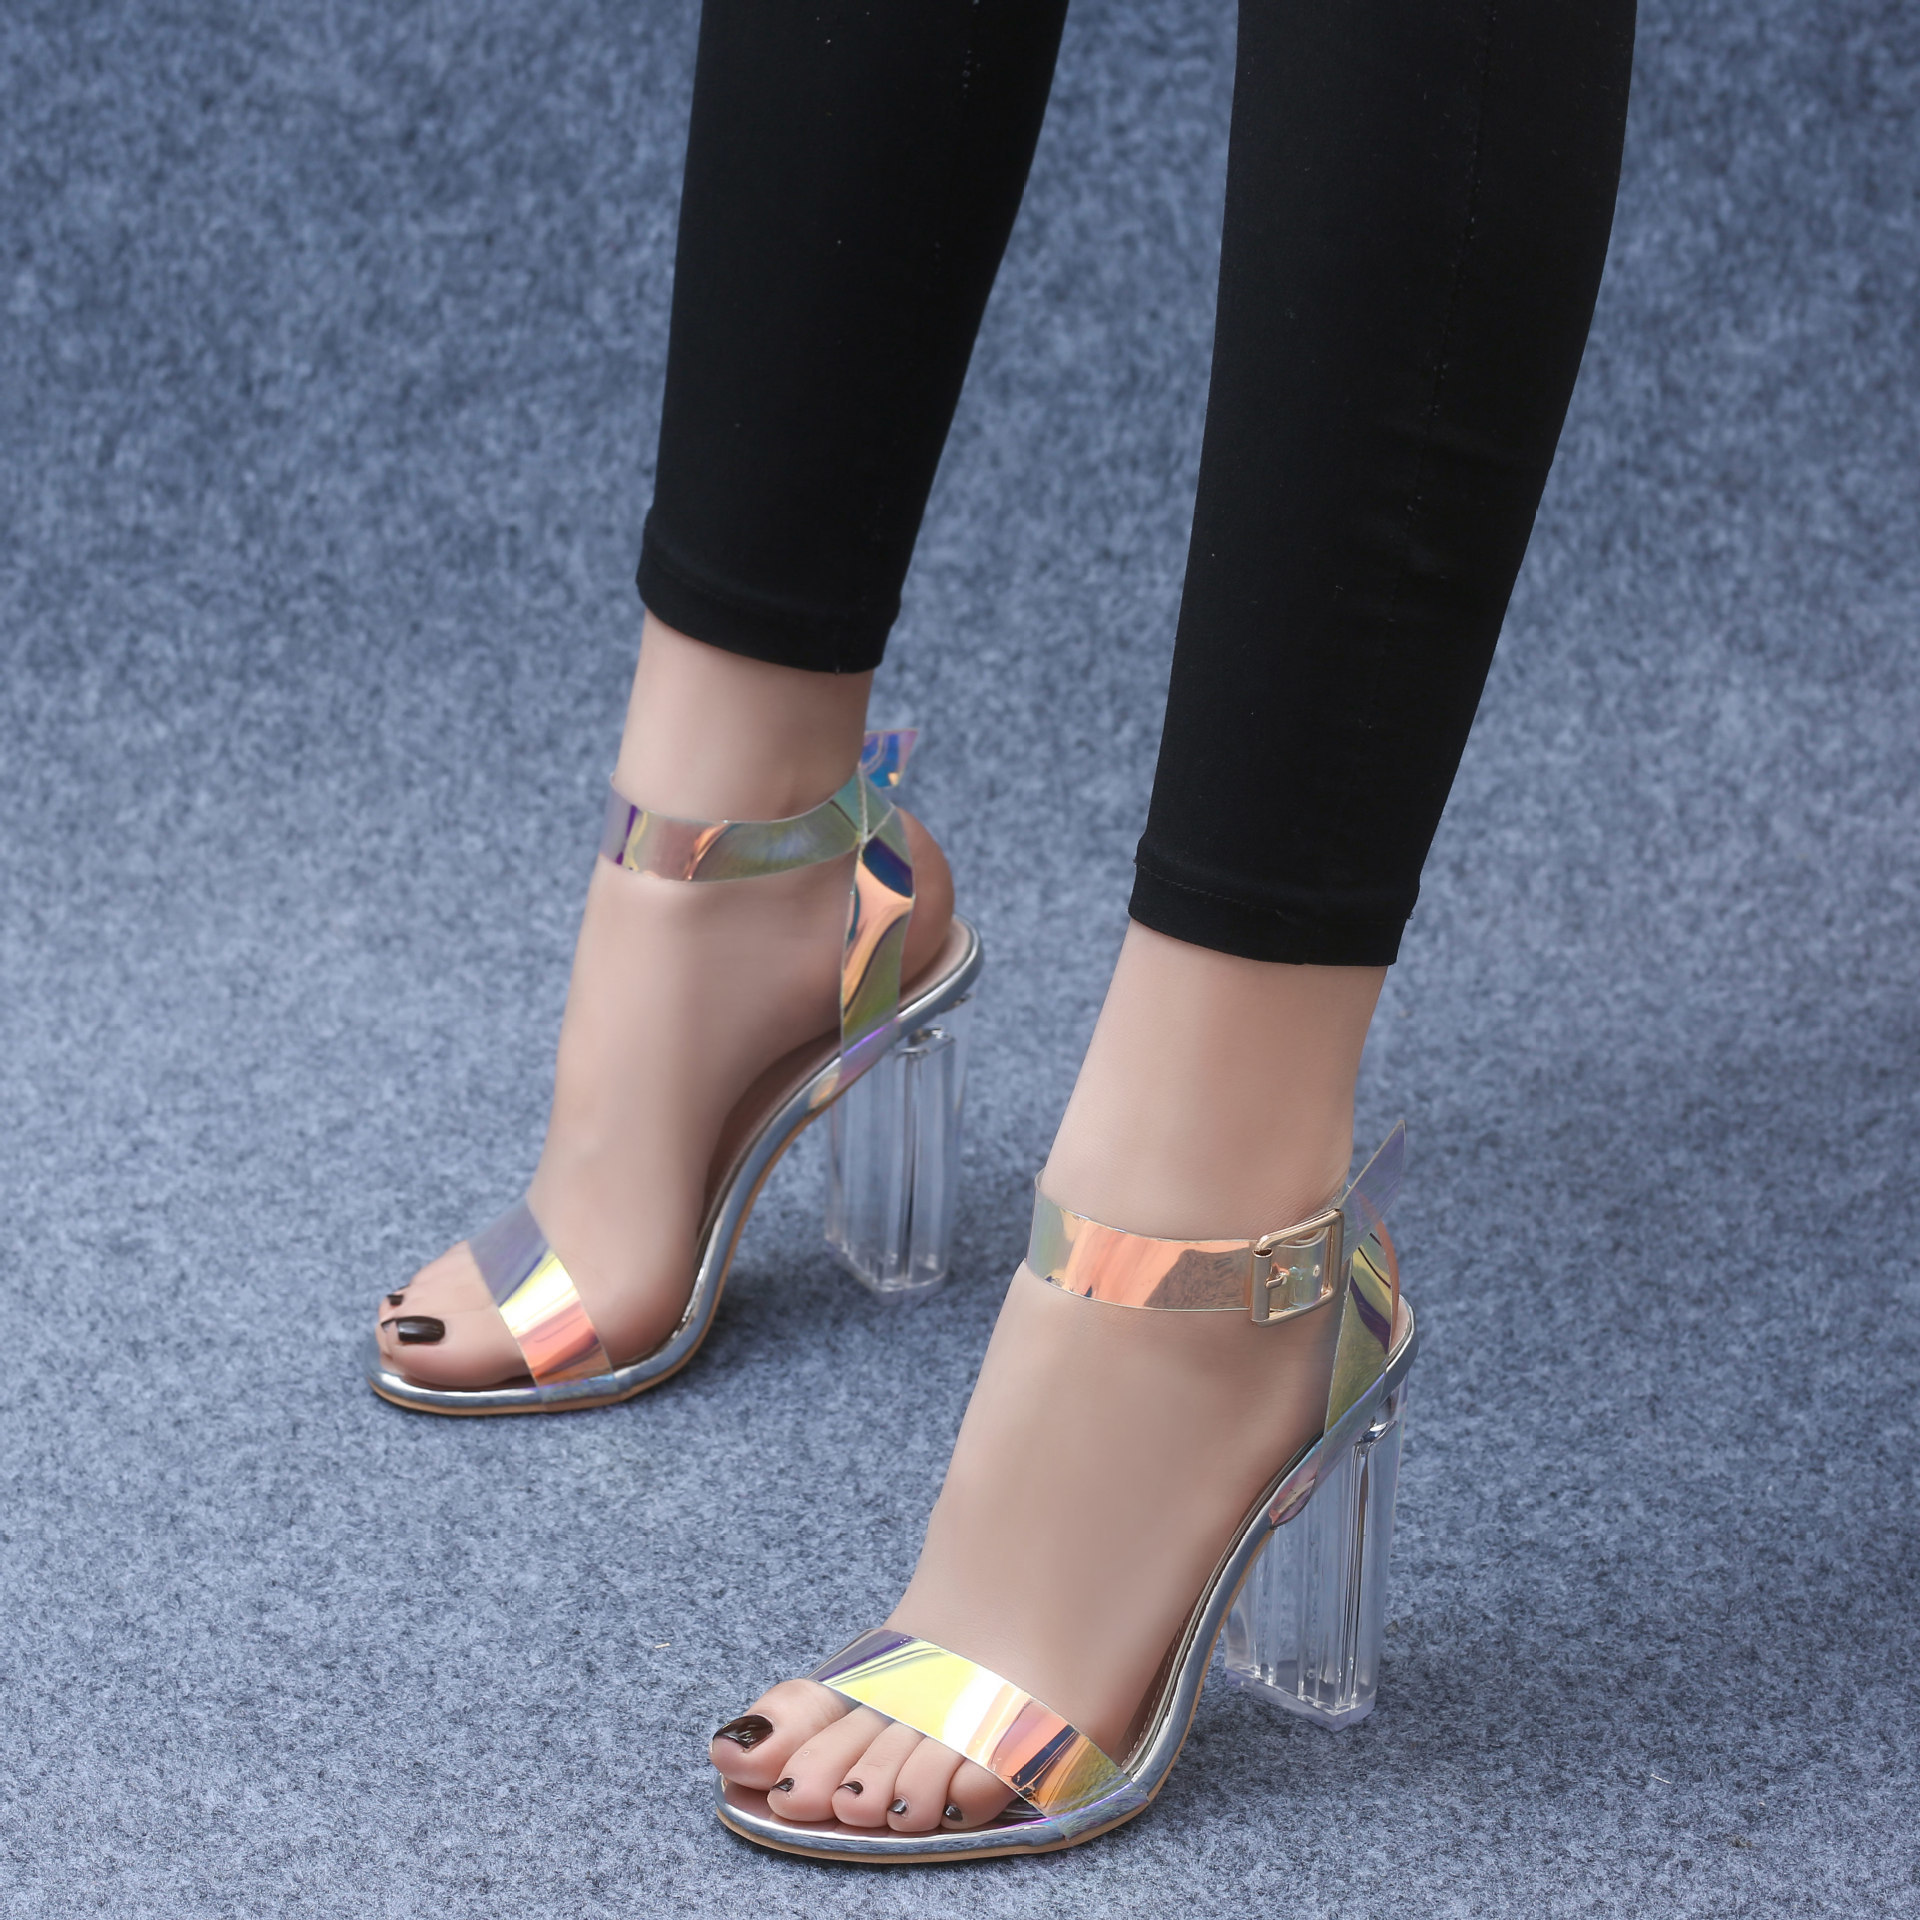 2019 Sandals Super Word Sandals Transparent Crystal High-heeled Shoes Woman2019 Sandals Super Word Sandals Transparent Crystal High-heeled Shoes Woman